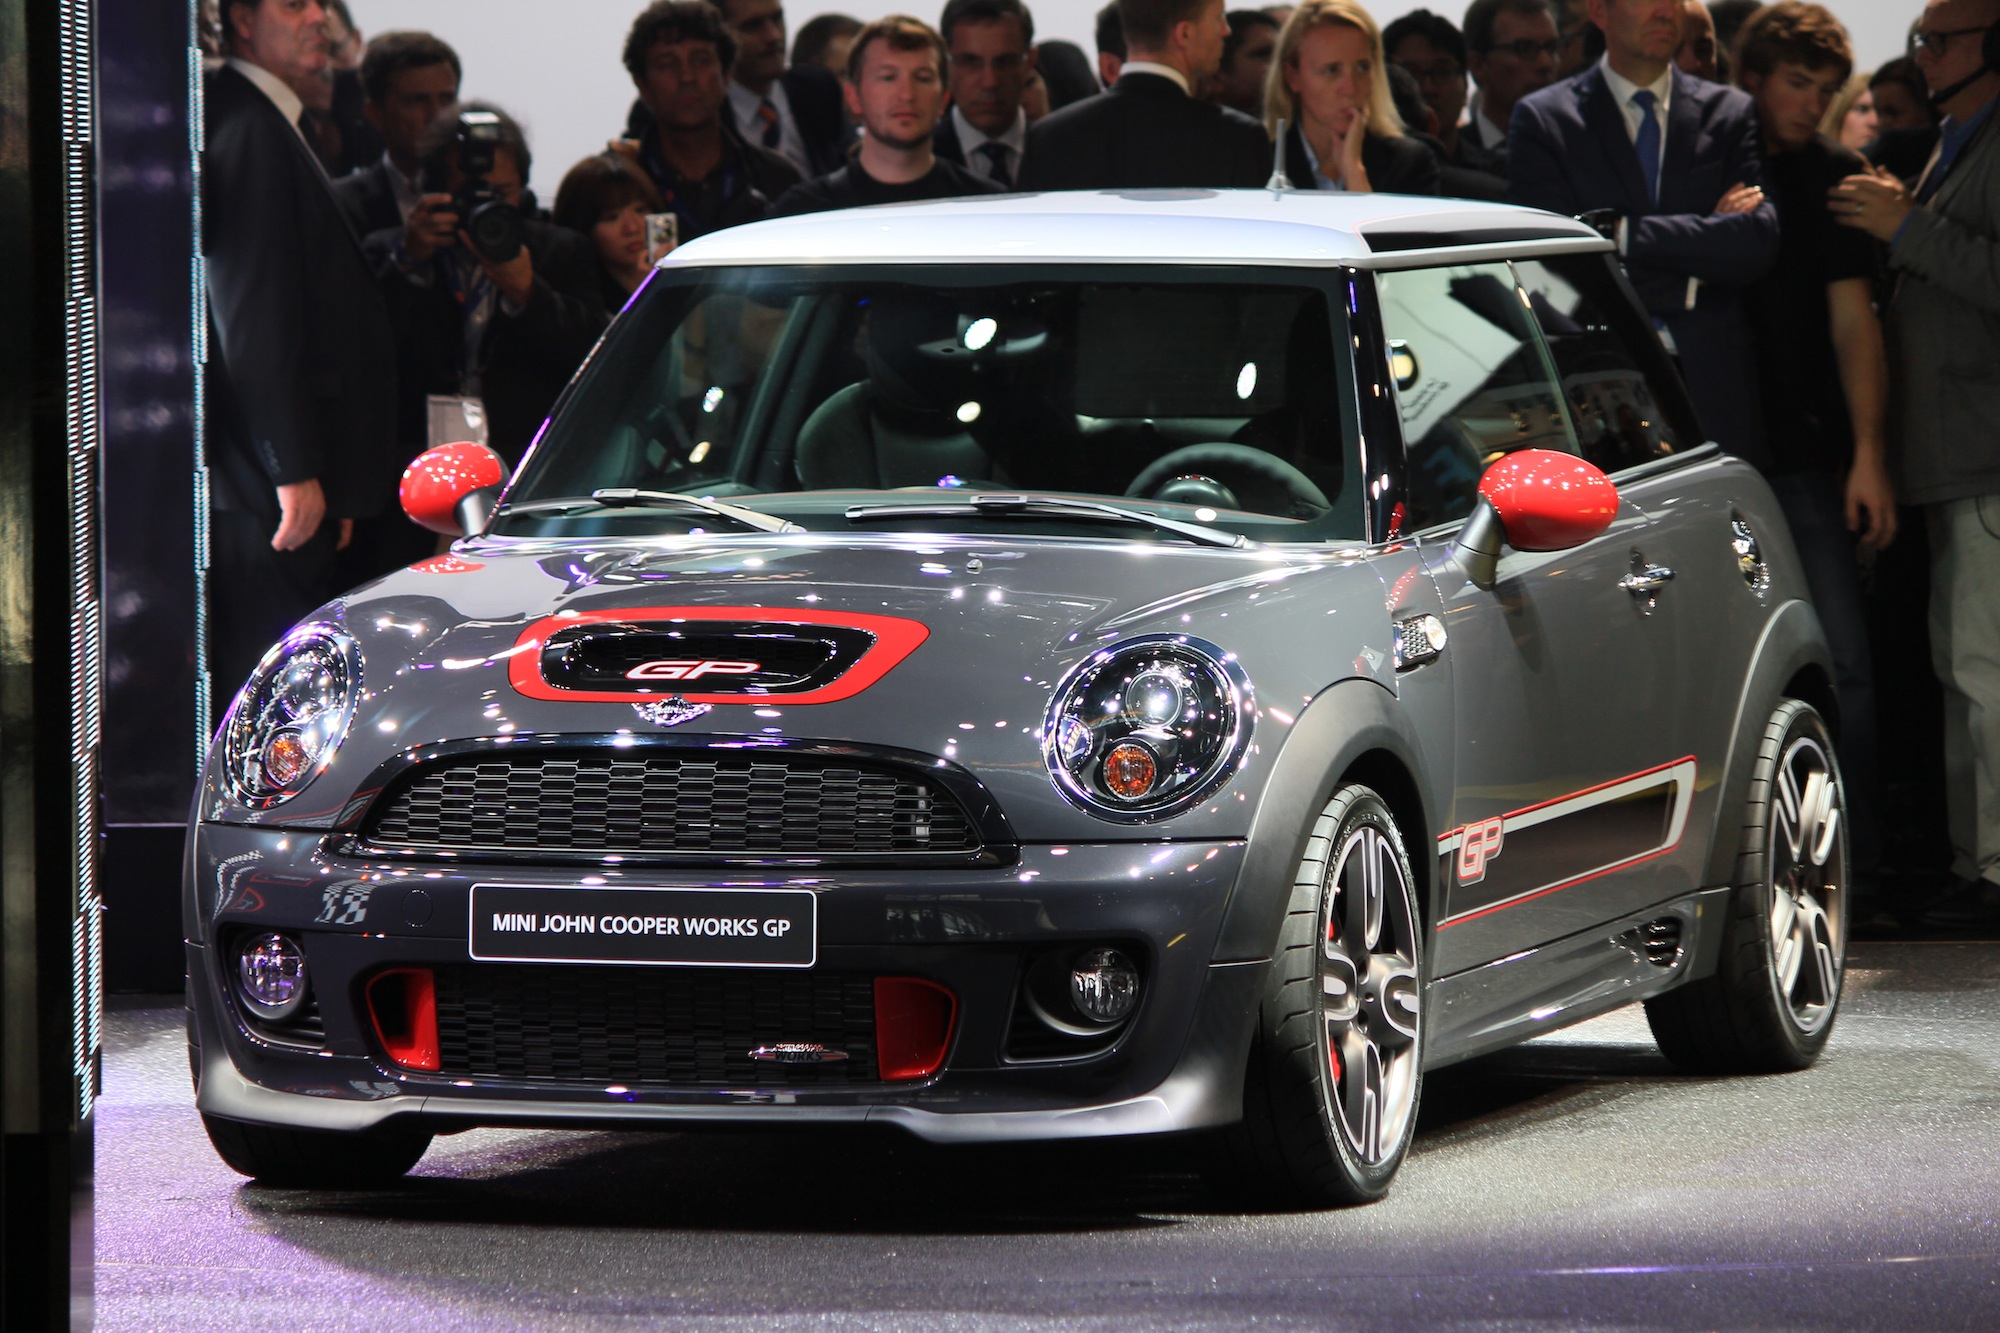 2013 Mini John Cooper Works Gp Live Photos 2012 Paris Auto Show